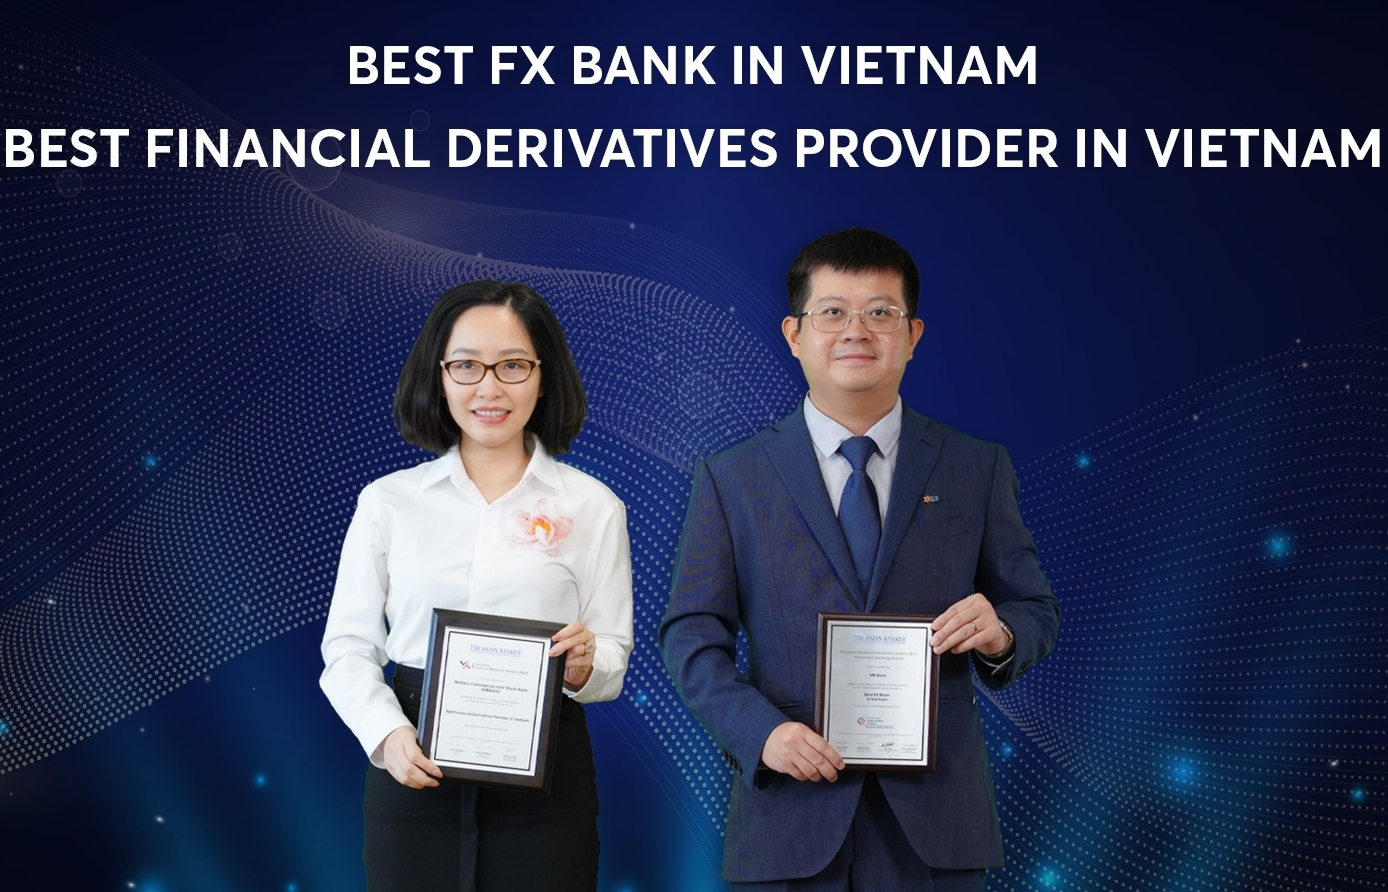 MB awarded titles of Best FX Bank and Best Financial Derivatives Provider in Vietnam